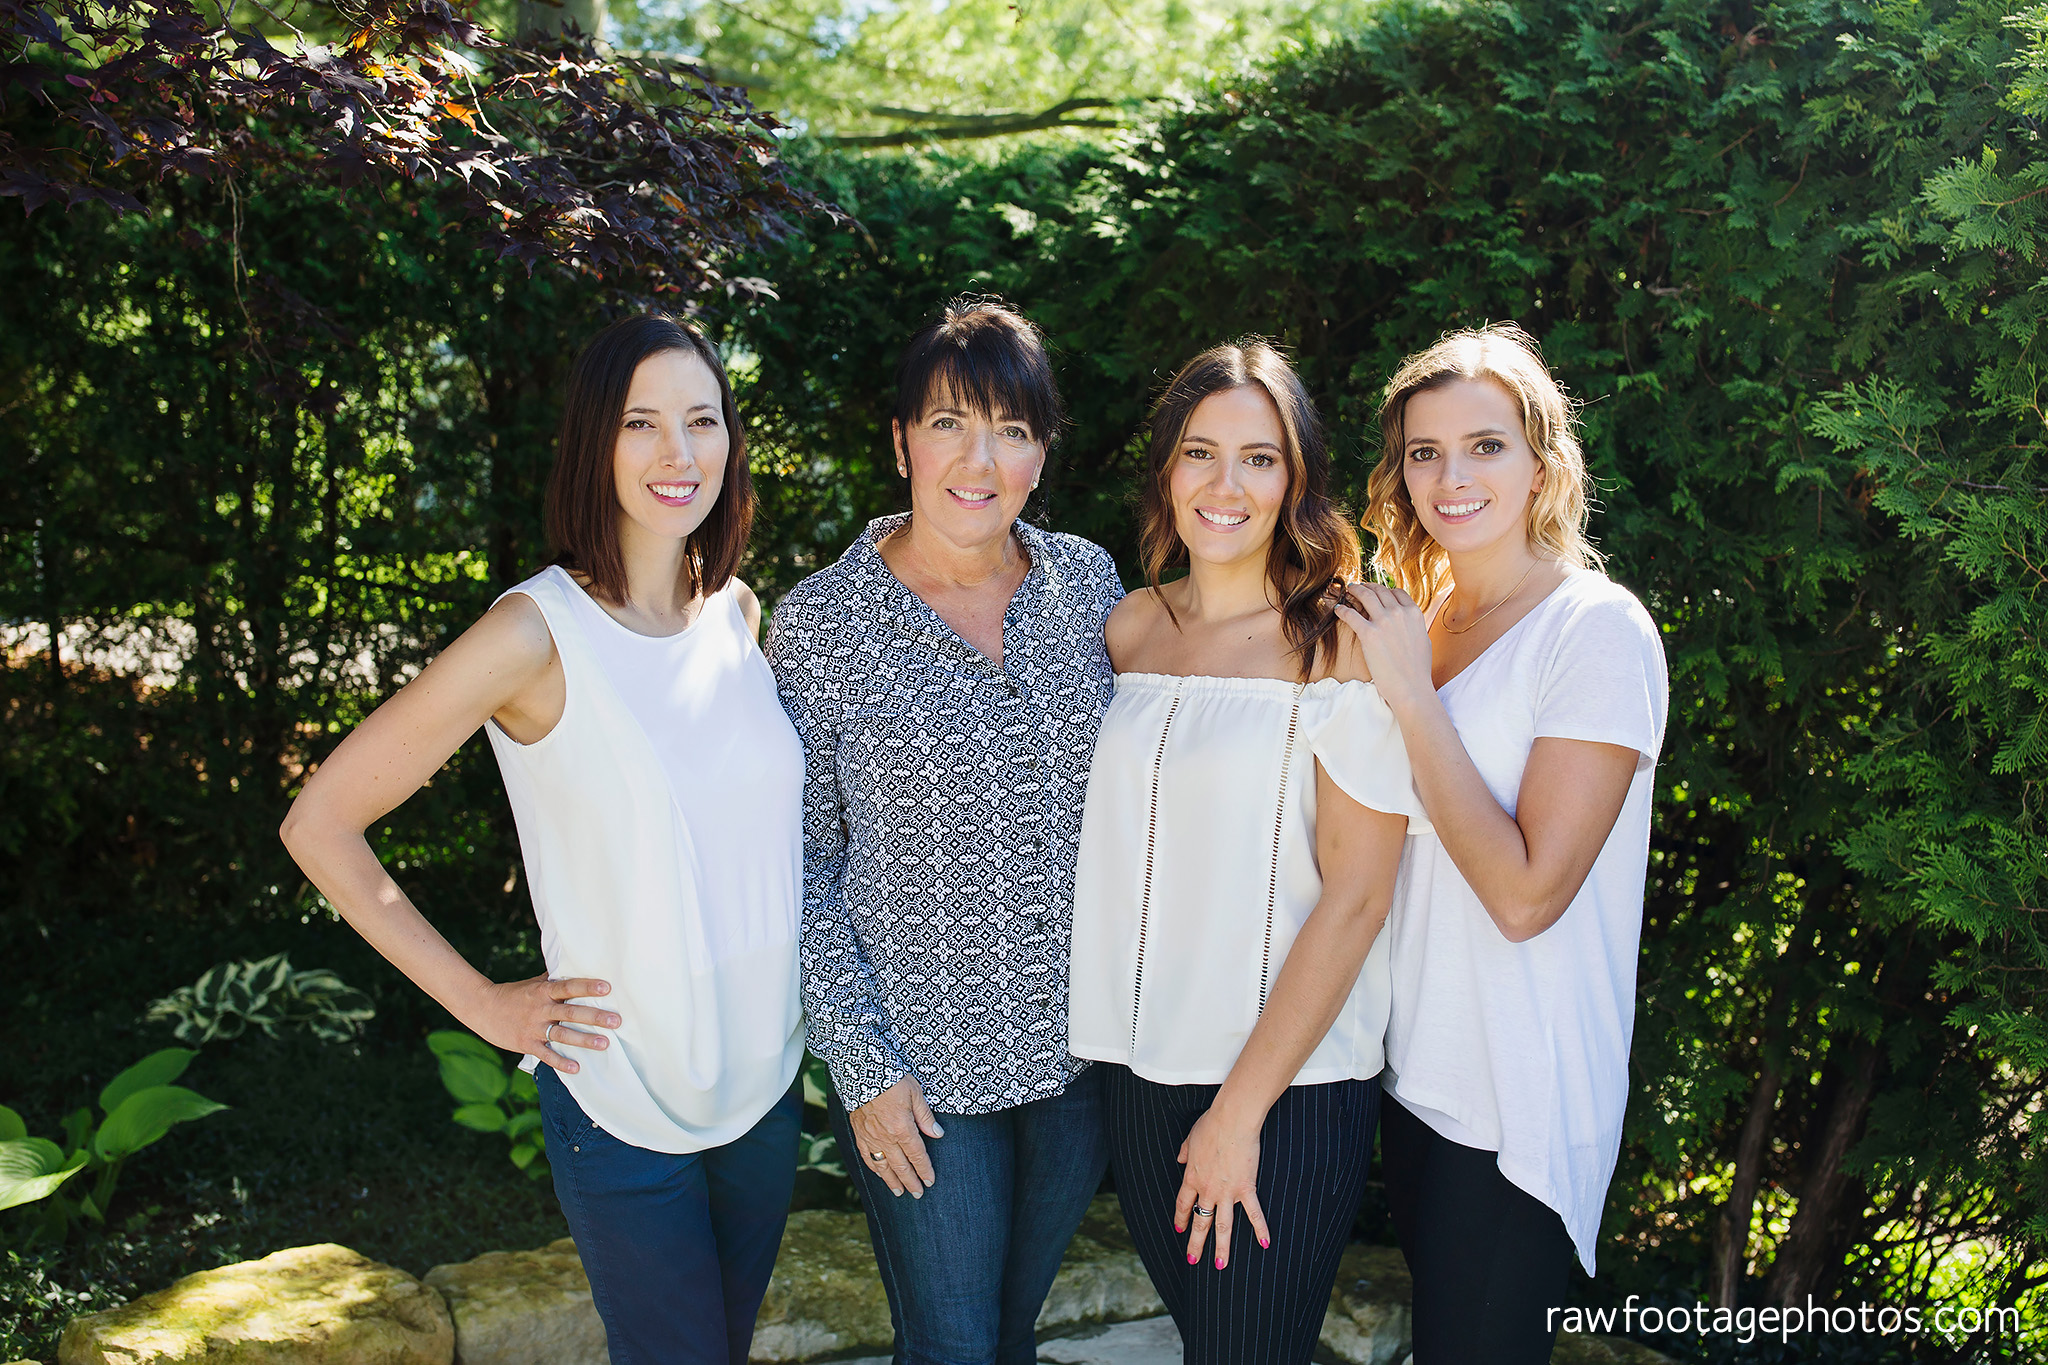 london_ontario_family_photographer-extended_family_session-raw_footage_photography001.jpg